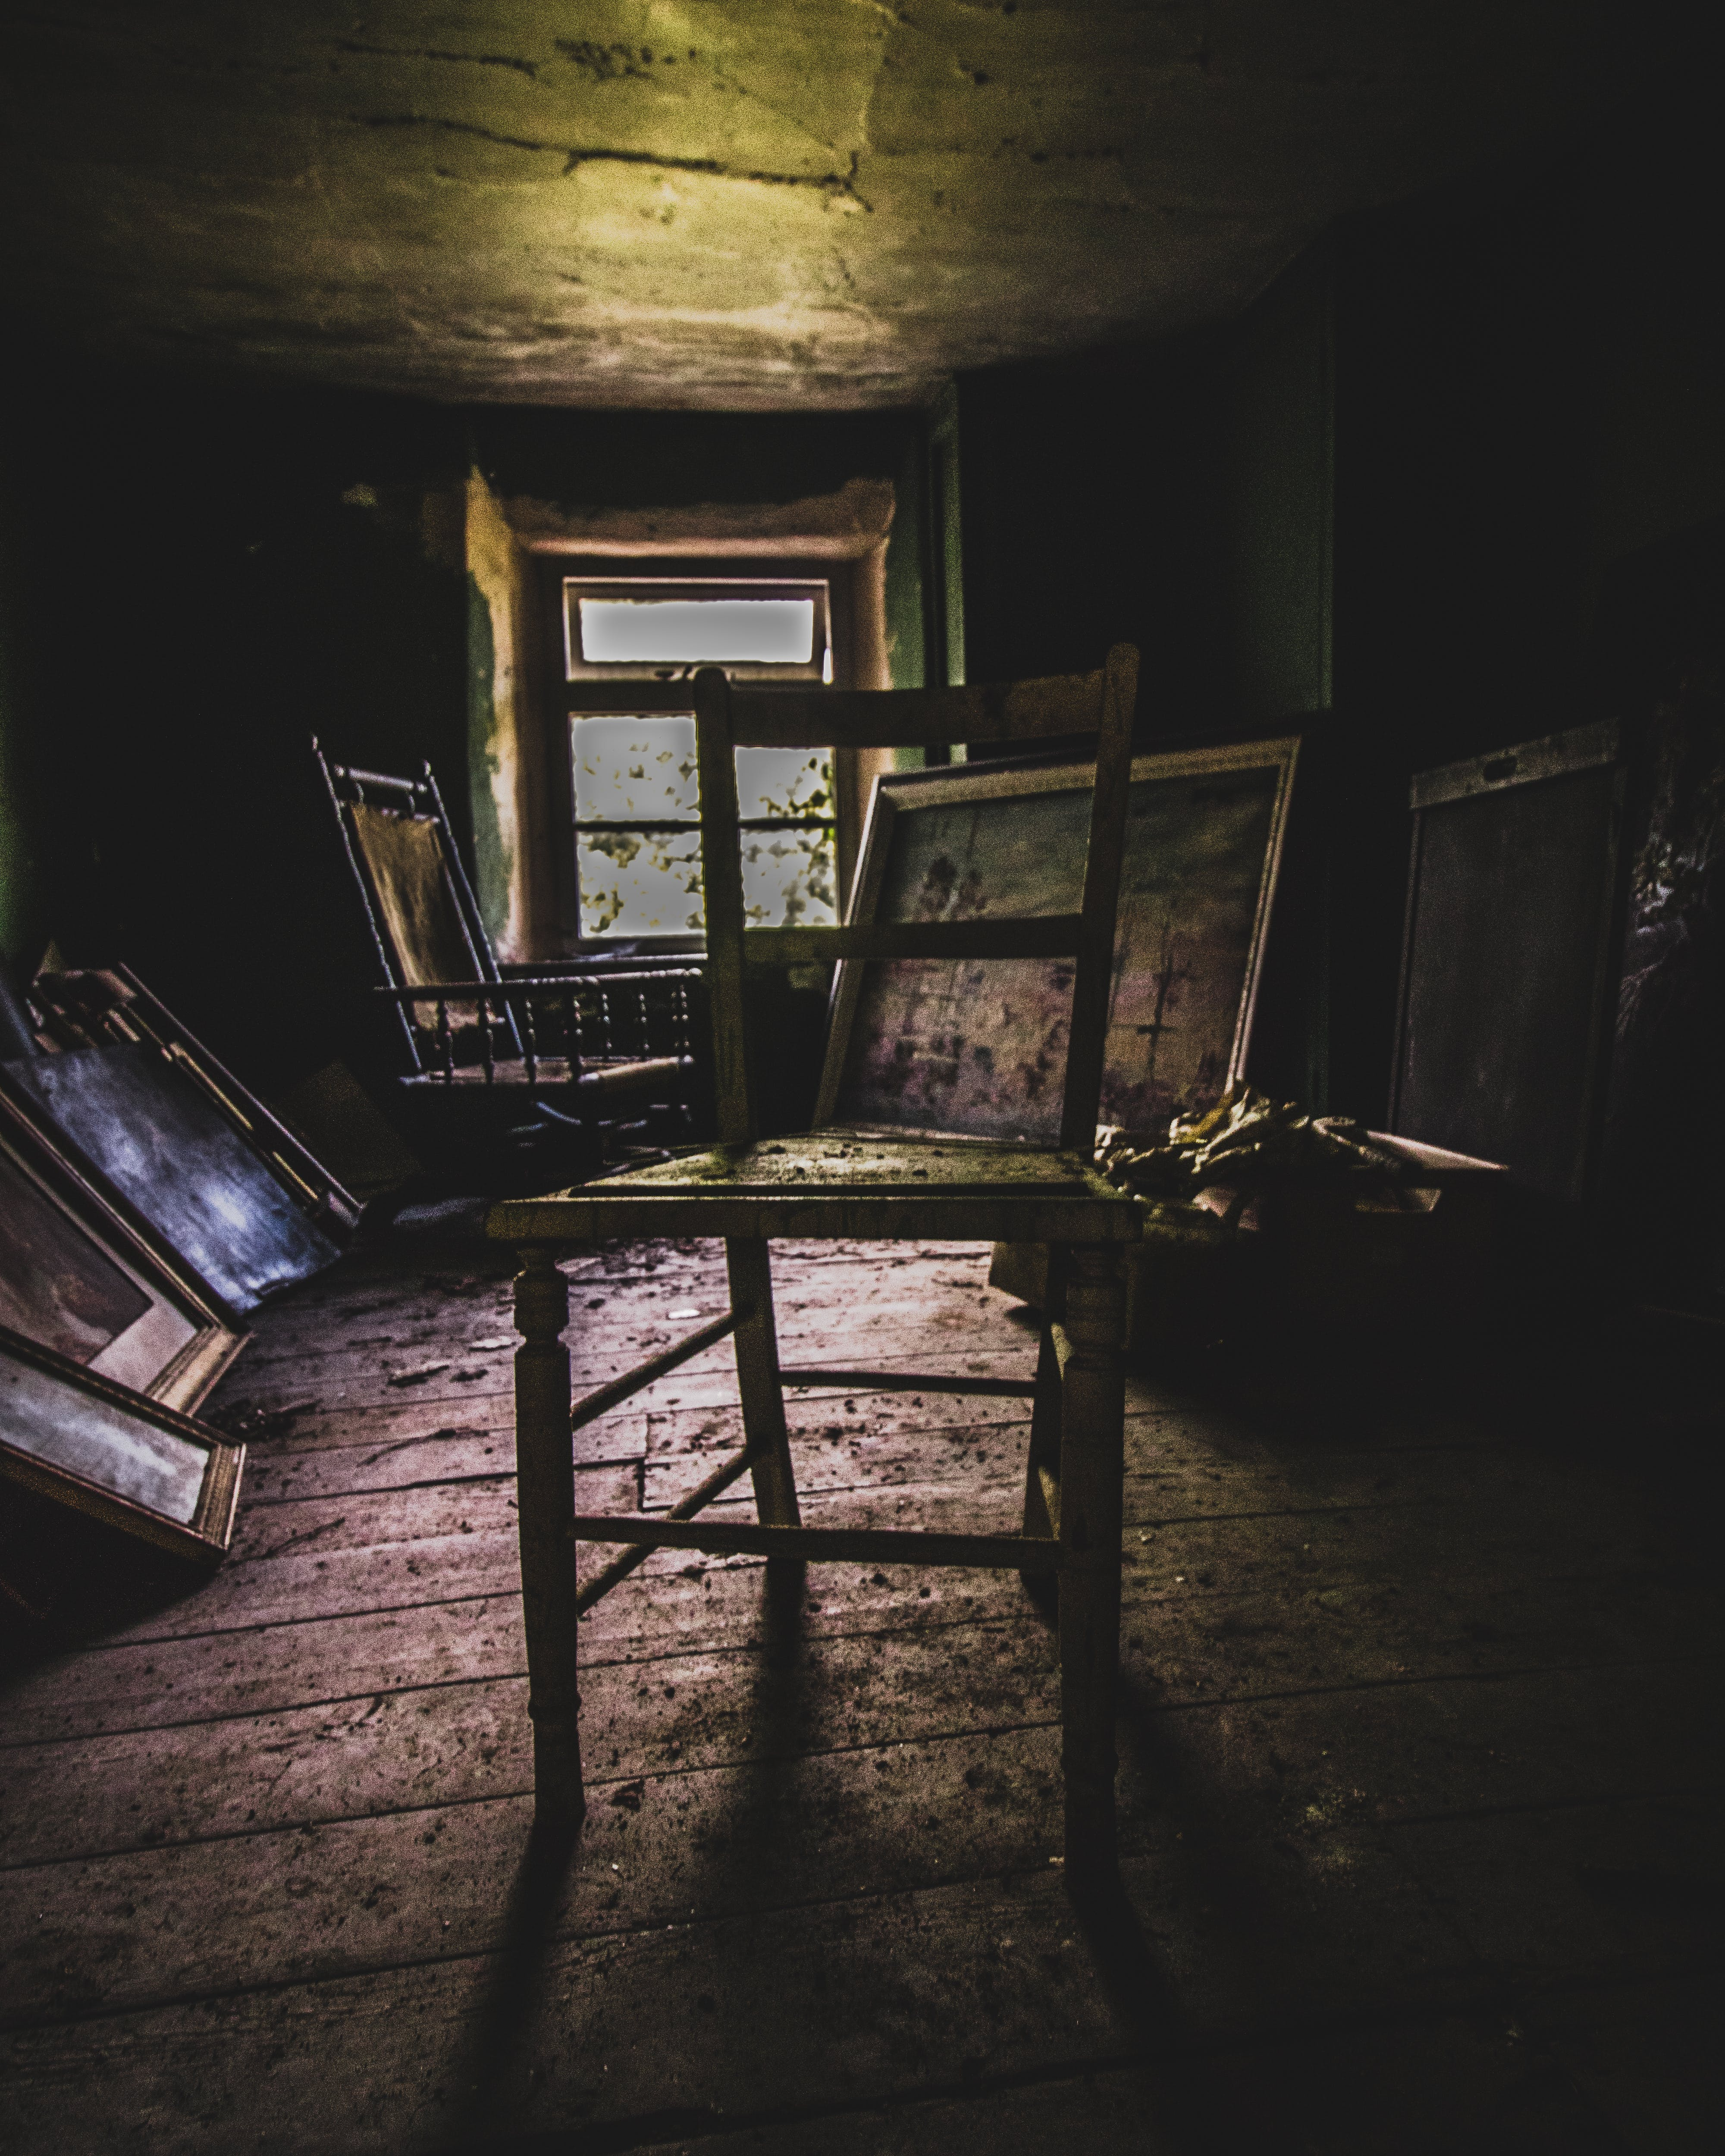 Free stock photo of chair, abandoned, urban